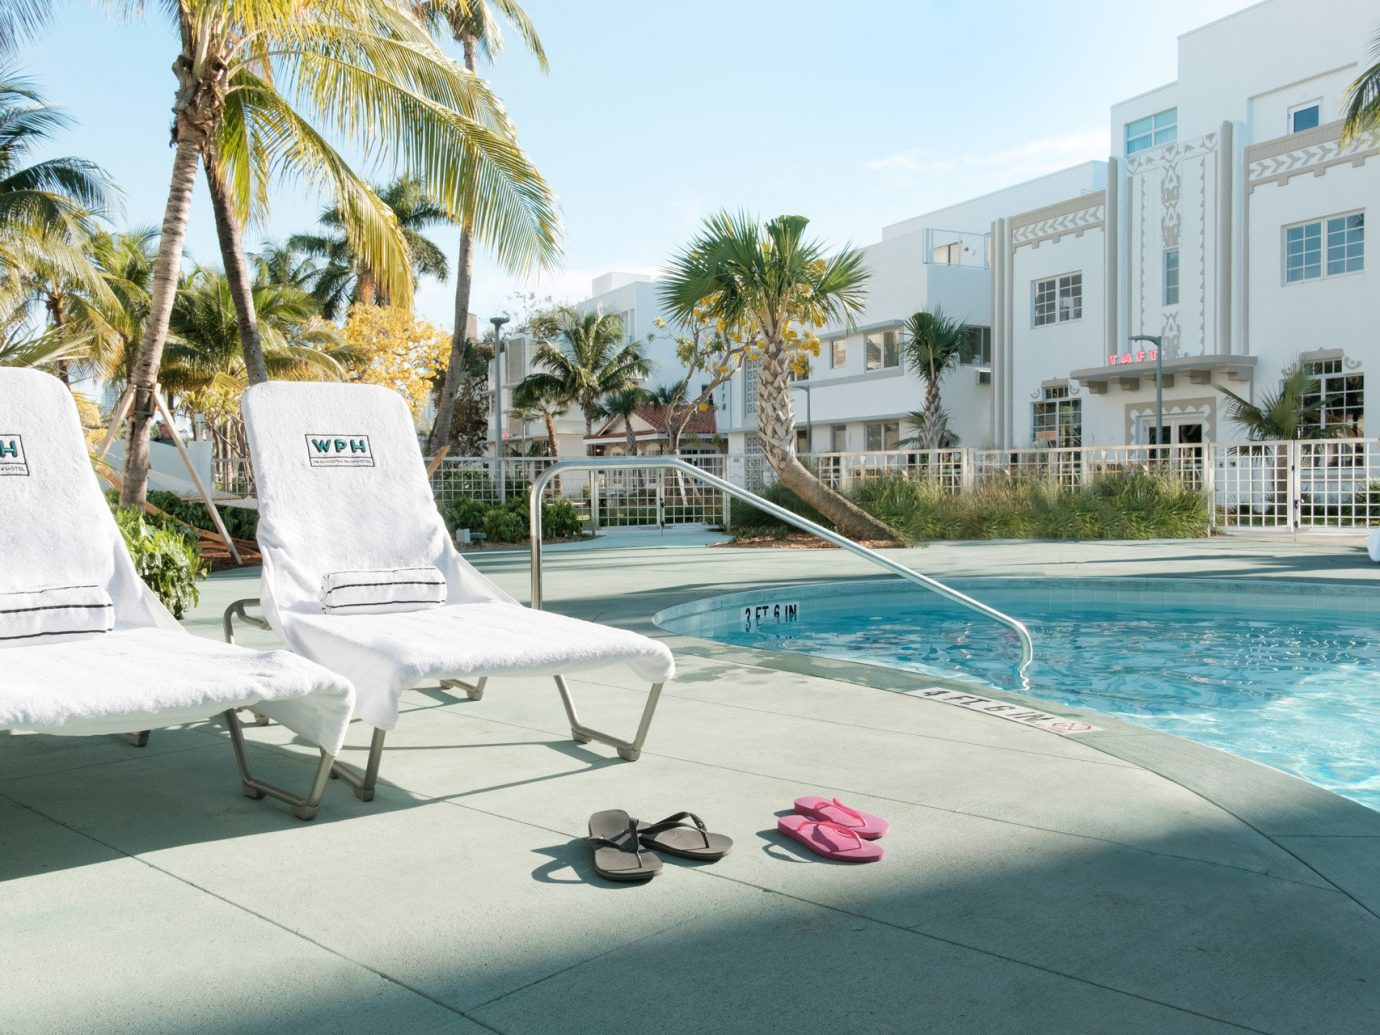 Boutique building Exterior Greenery Hotels lounge chairs Luxury outdoor pool palm trees Patio Pool Terrace trees Tropical Weekend Getaways tree outdoor sky leisure swimming pool property condominium vacation estate Resort caribbean Villa apartment